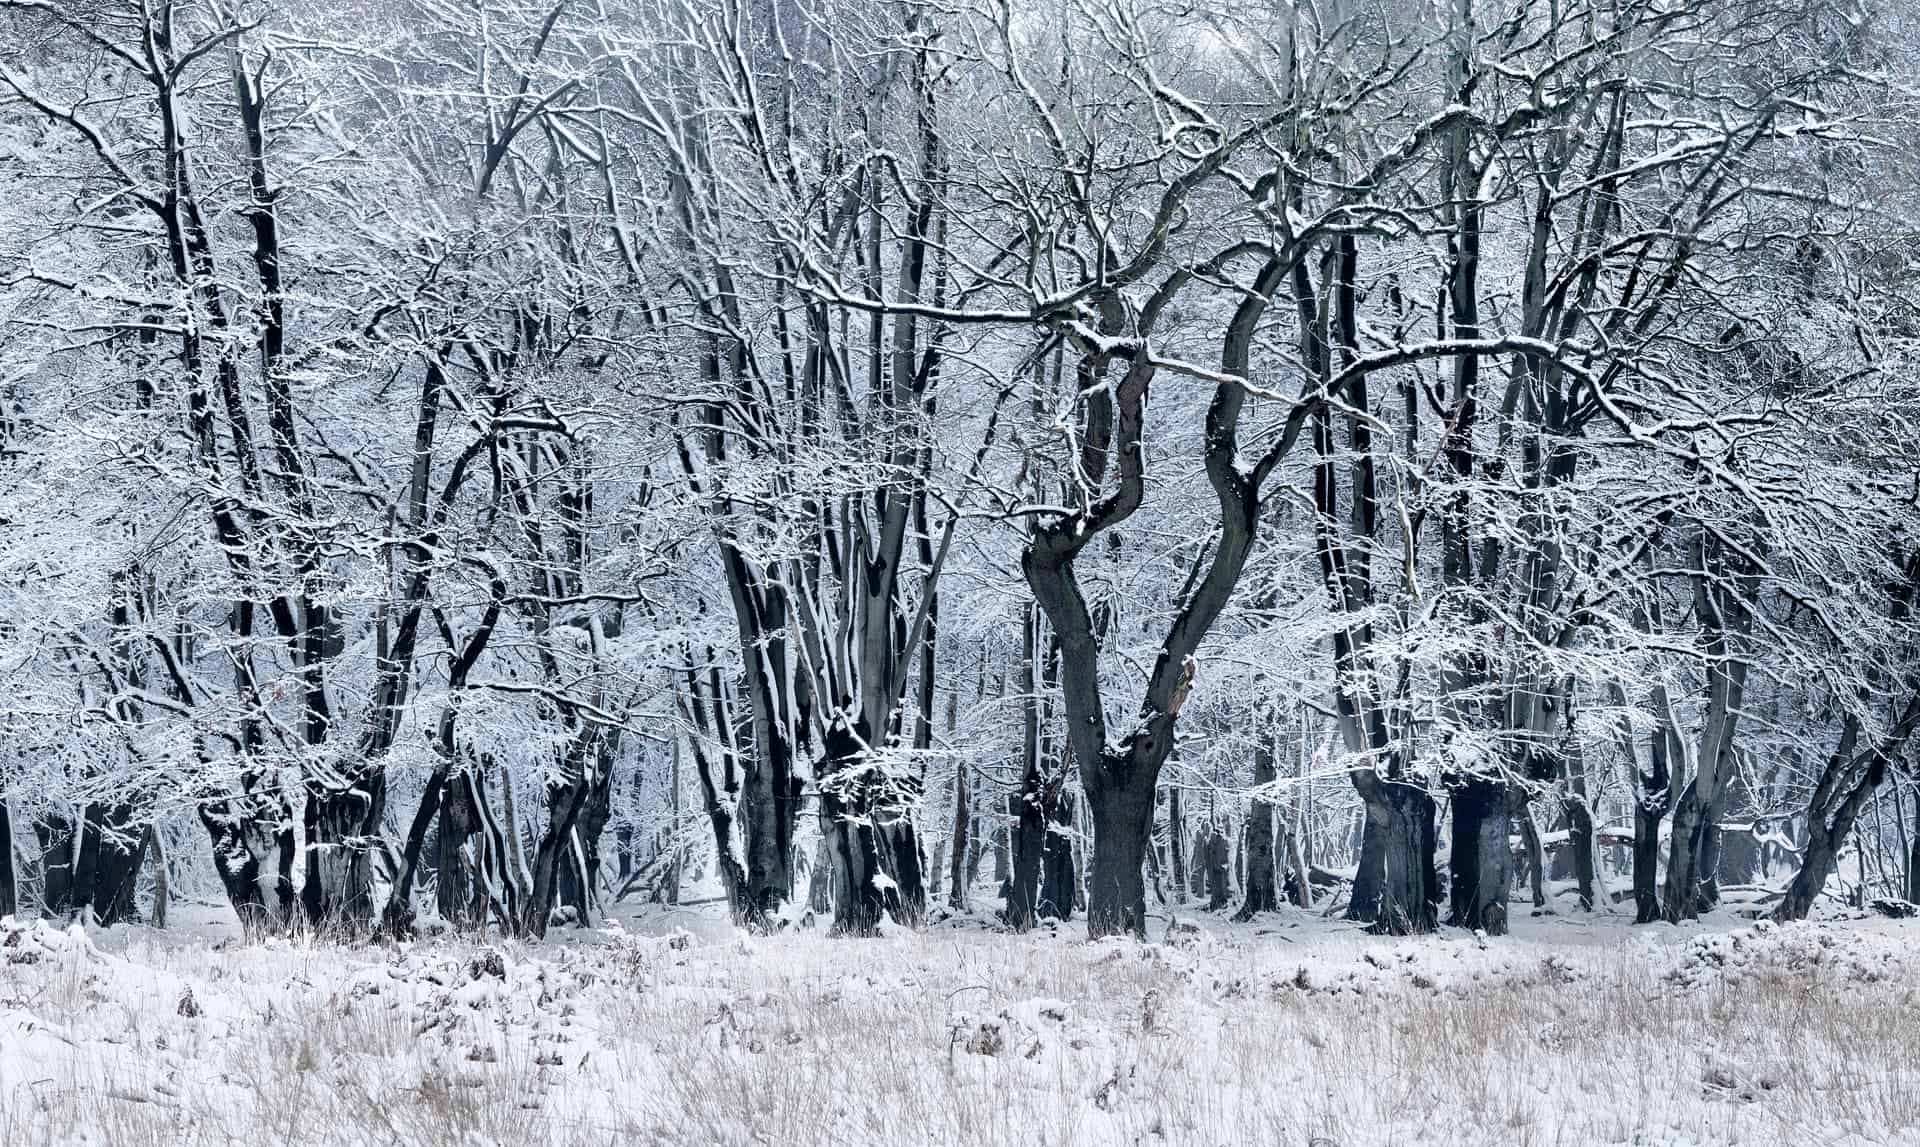 Forest in winter, Epping Forest, Essex, UK